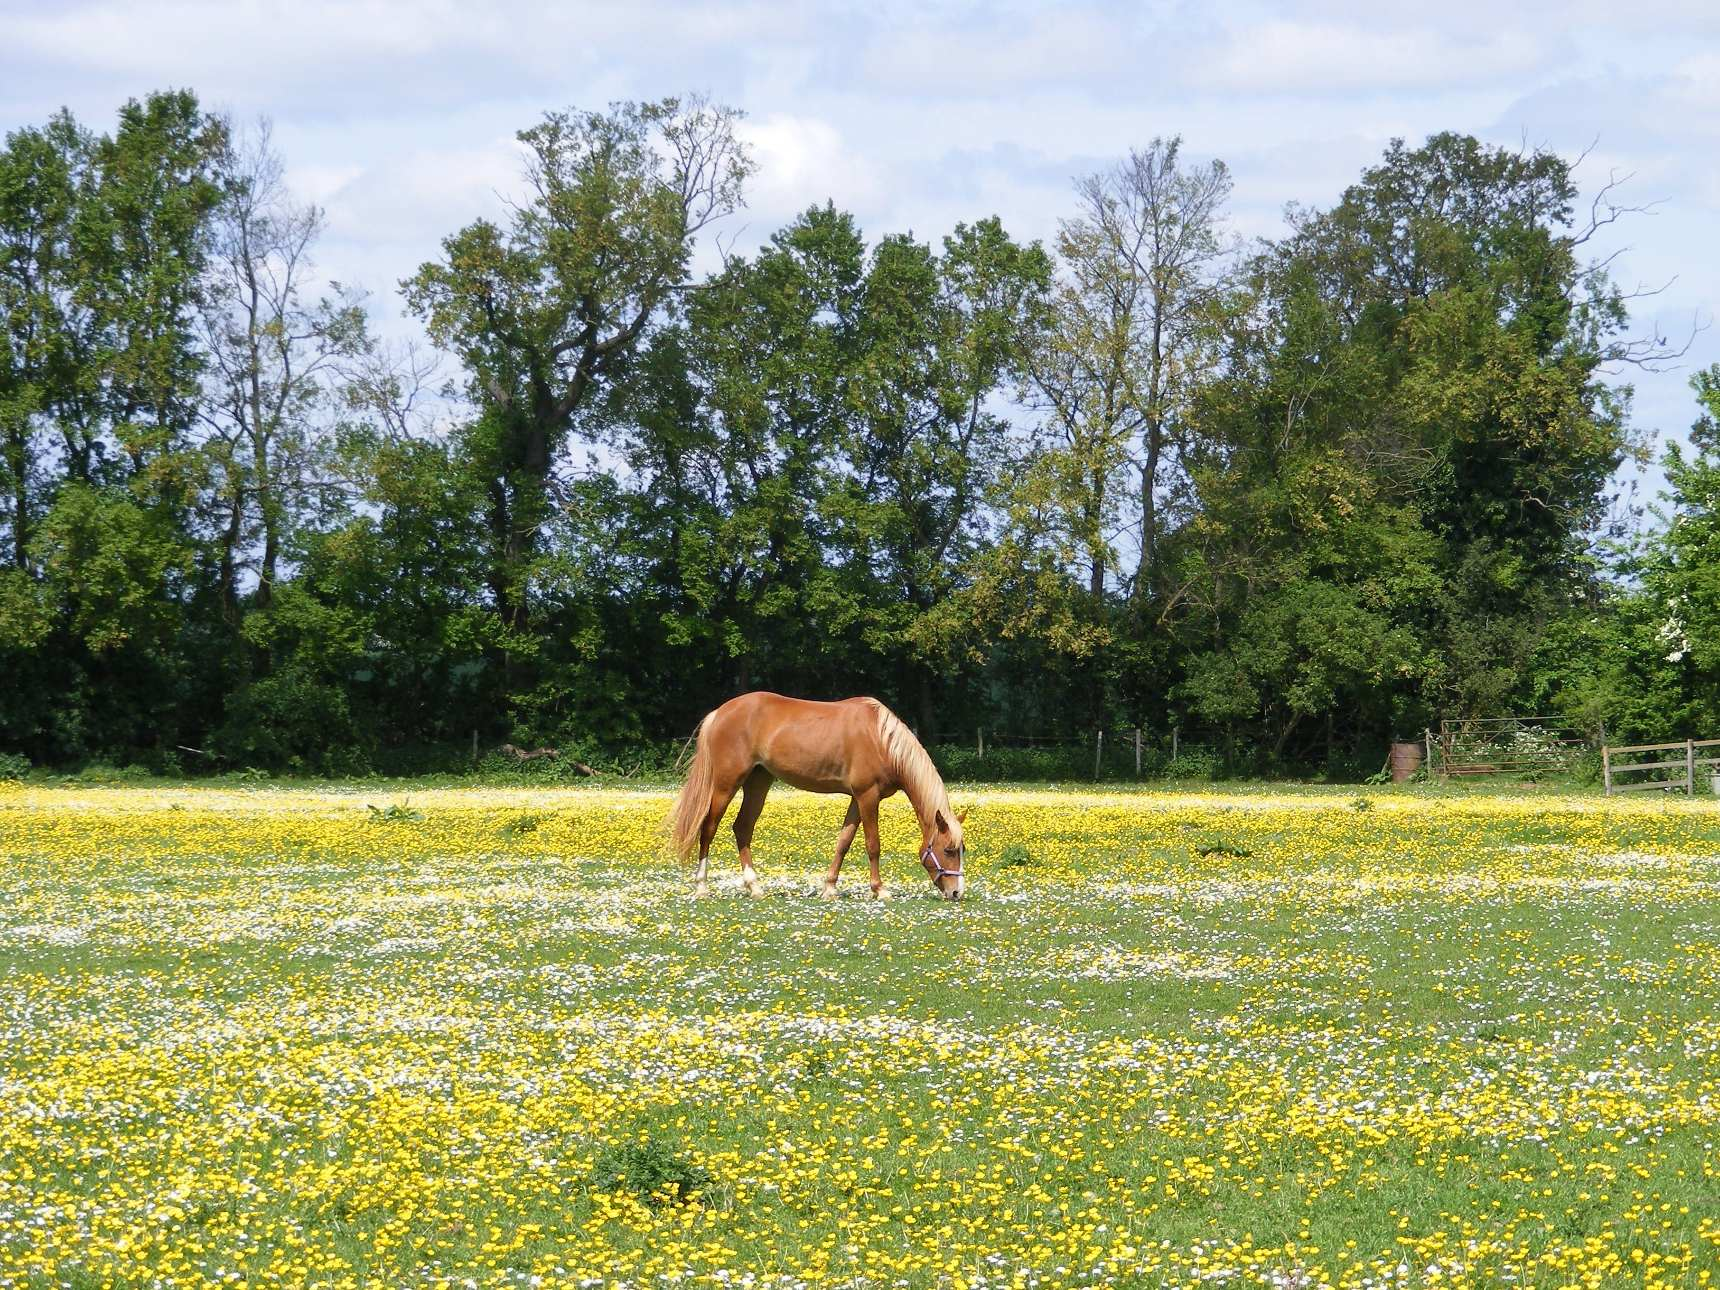 Horse Spring Grass: Problems & Solutions - EuroXciser